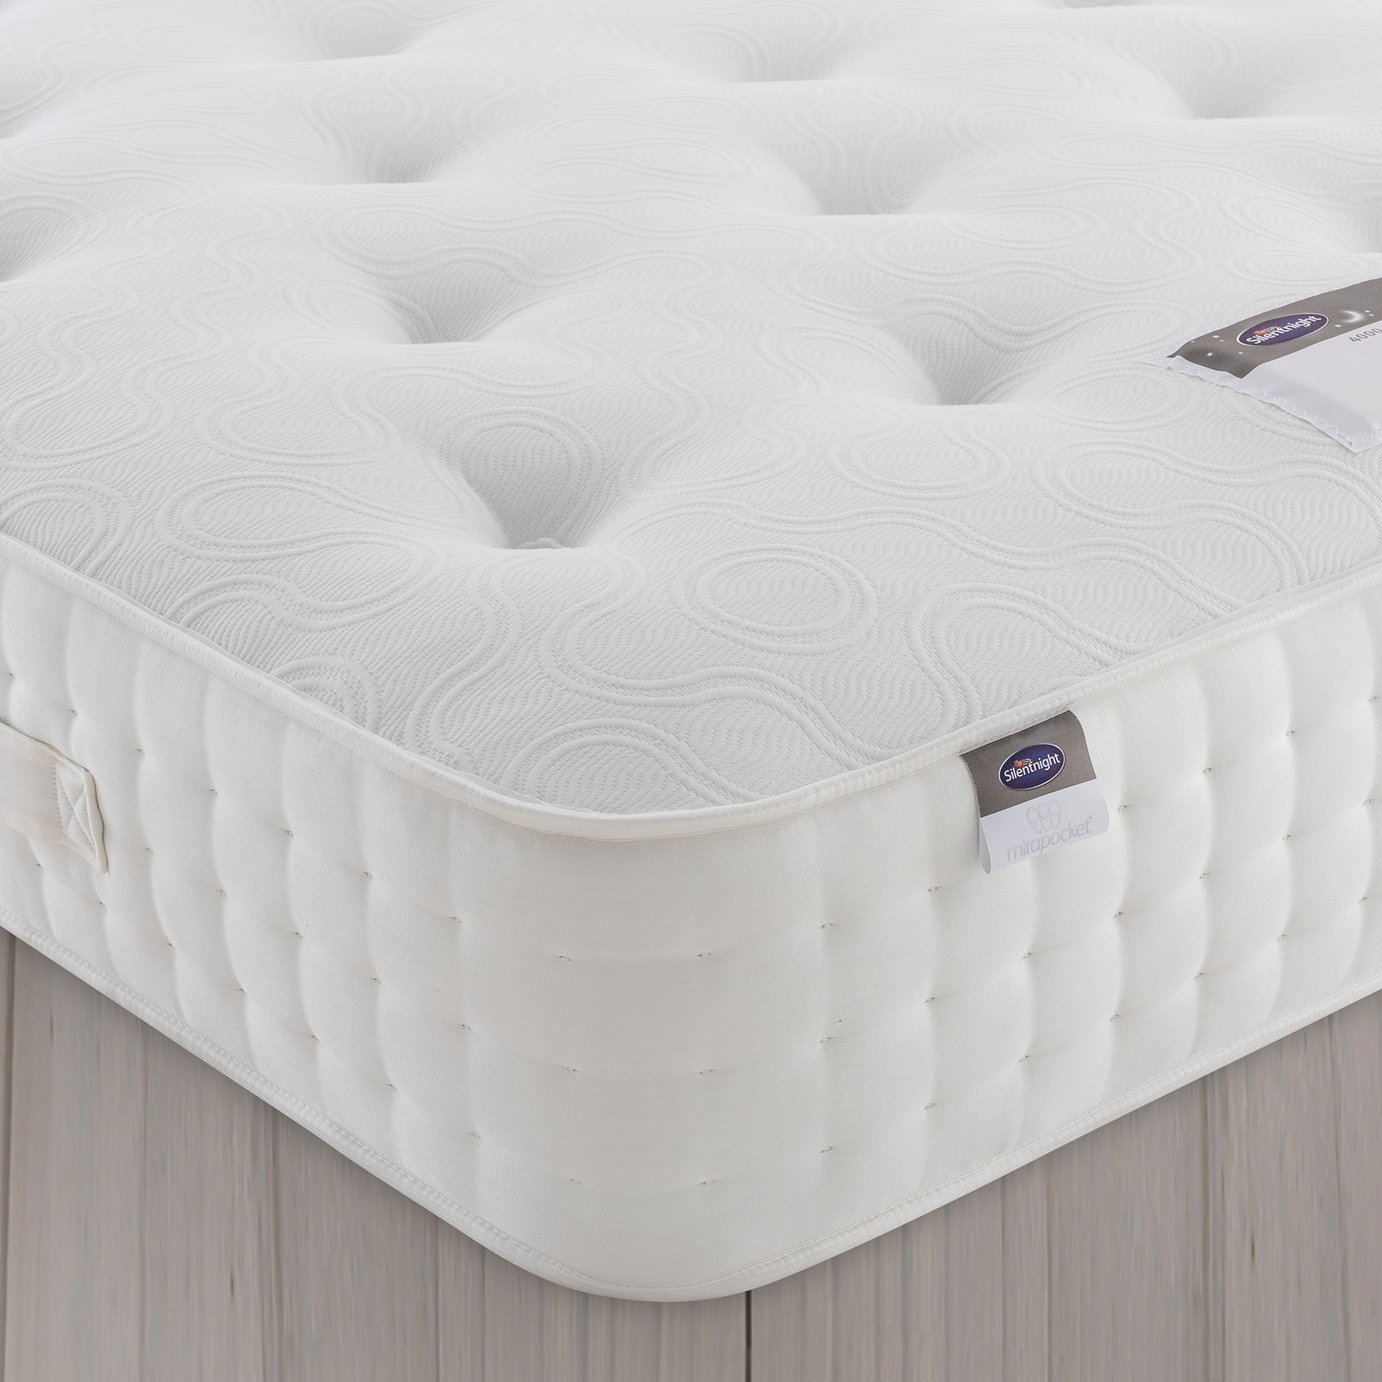 Silentnight - Whitfield 4000 Pocket Memory Mattress -Kingsize at Argos